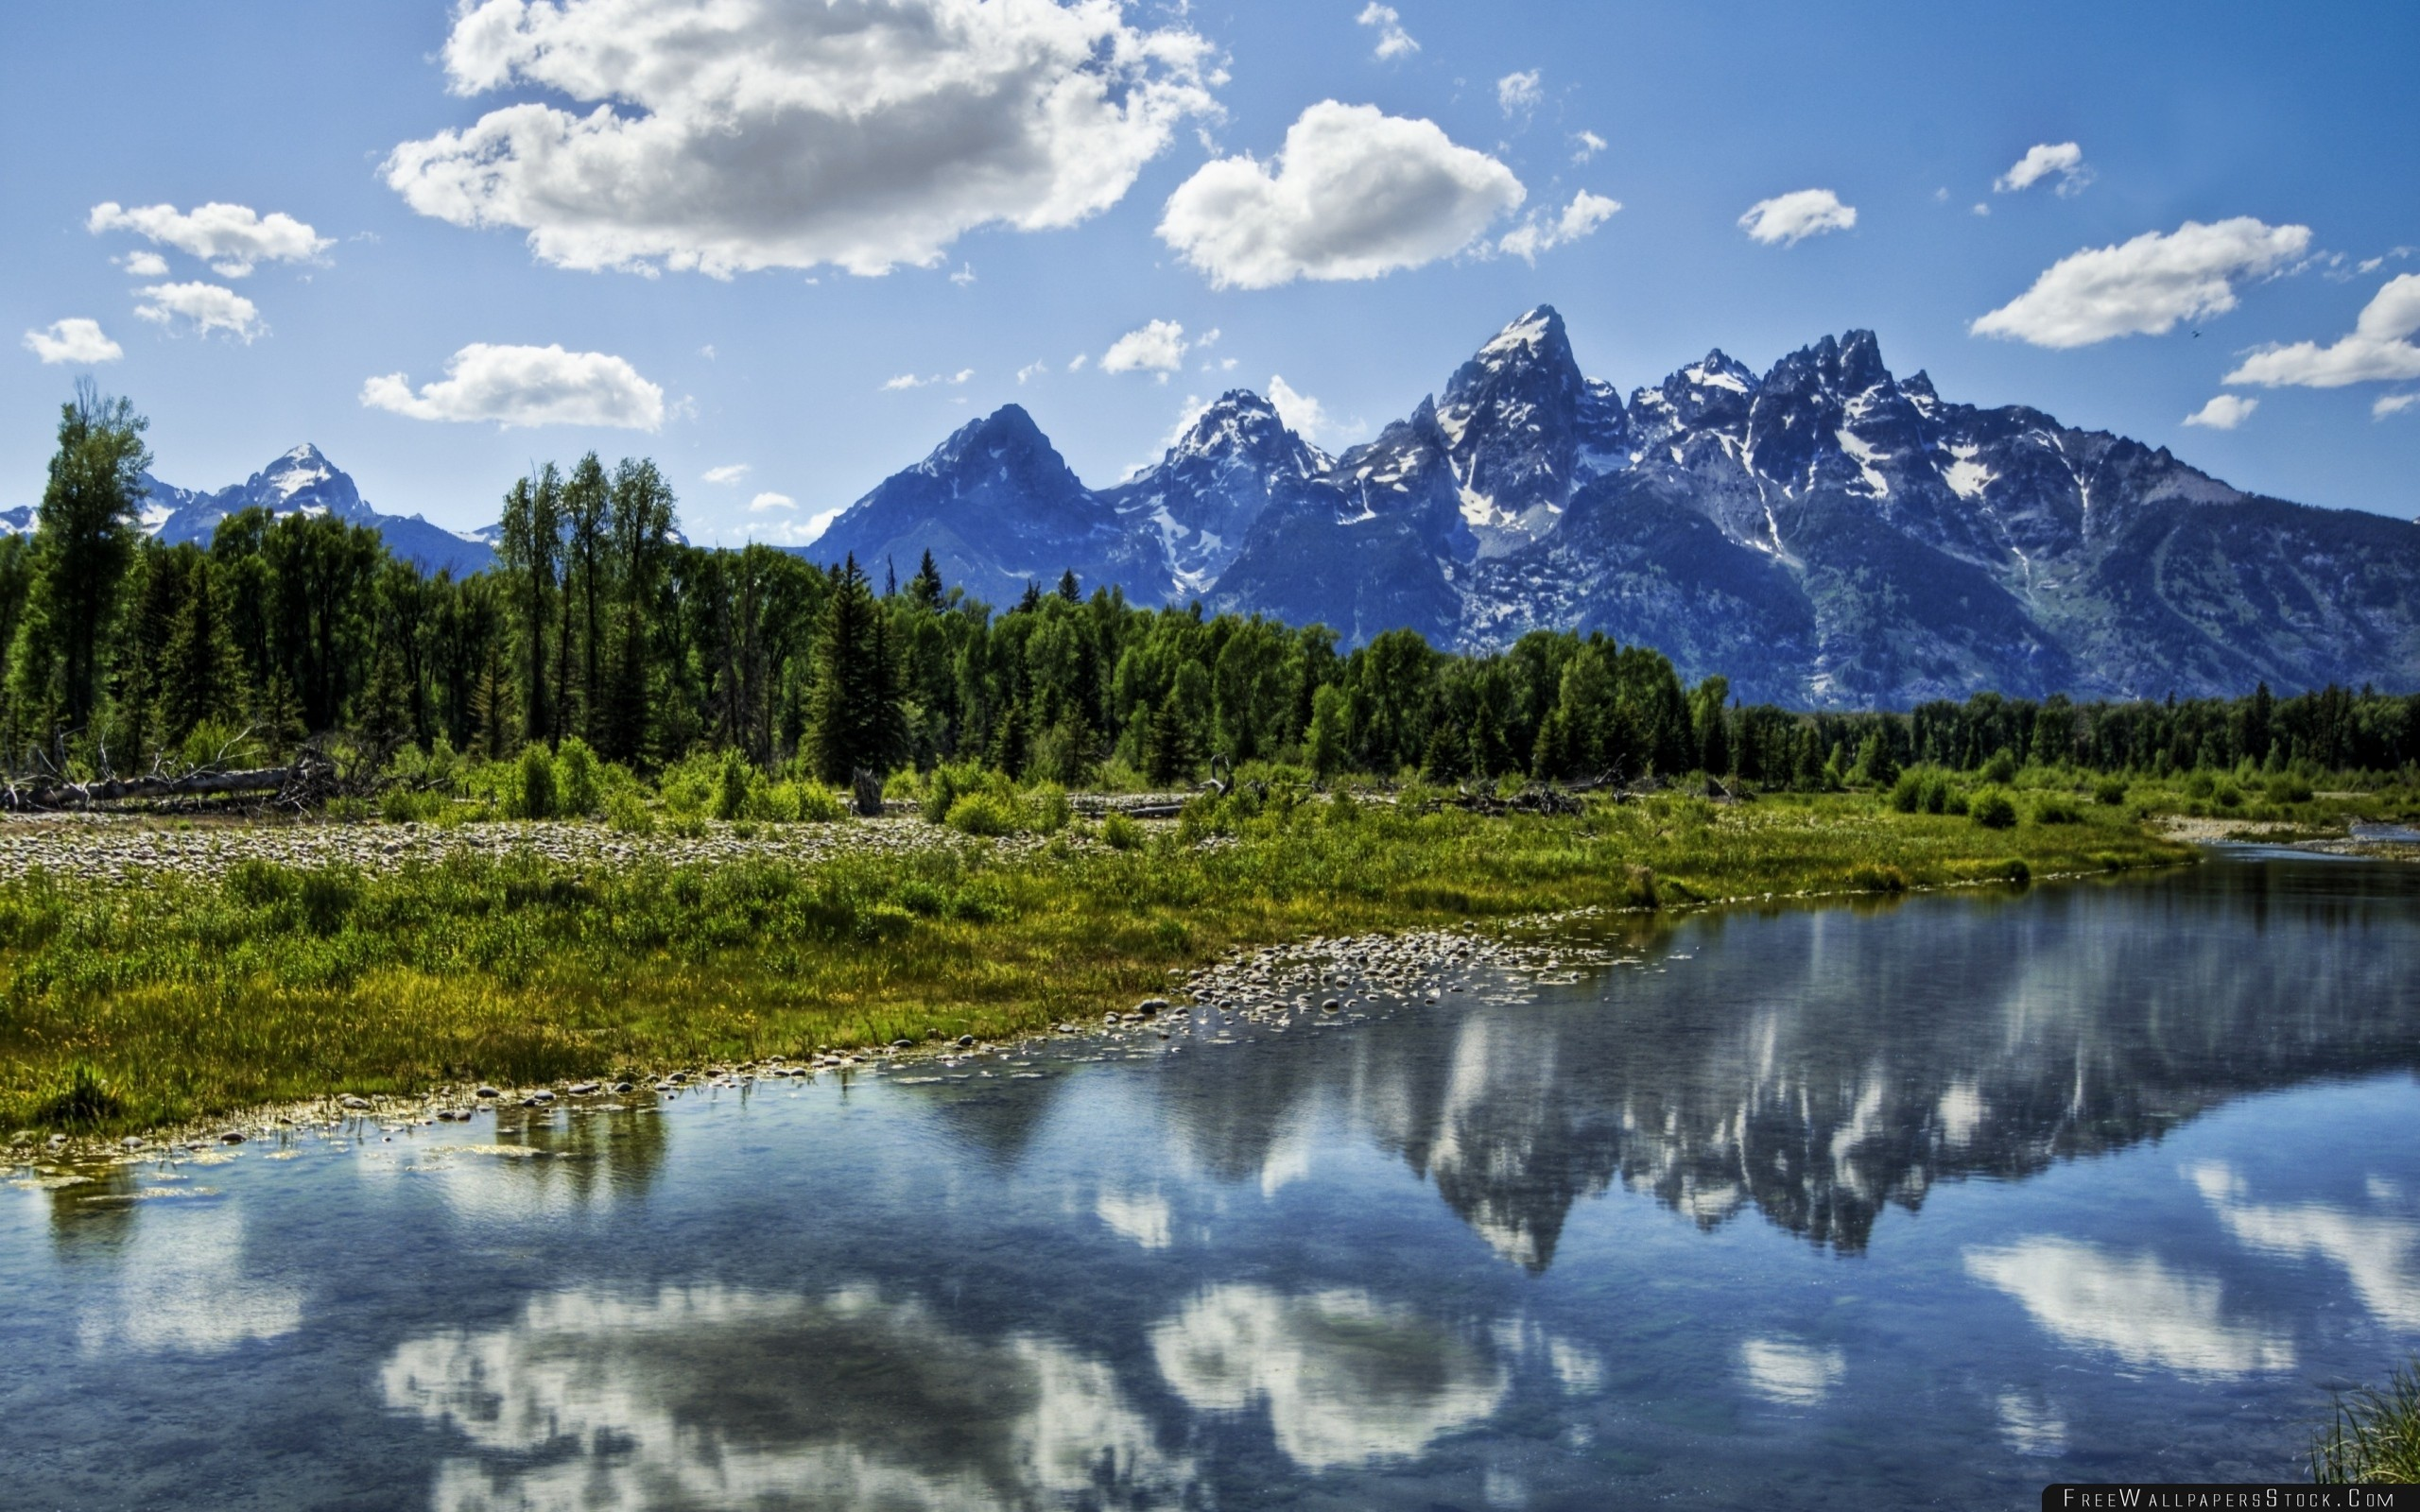 Download Free Wallpaper River Clouds Reflection Mountains Wood Harmony Brightly